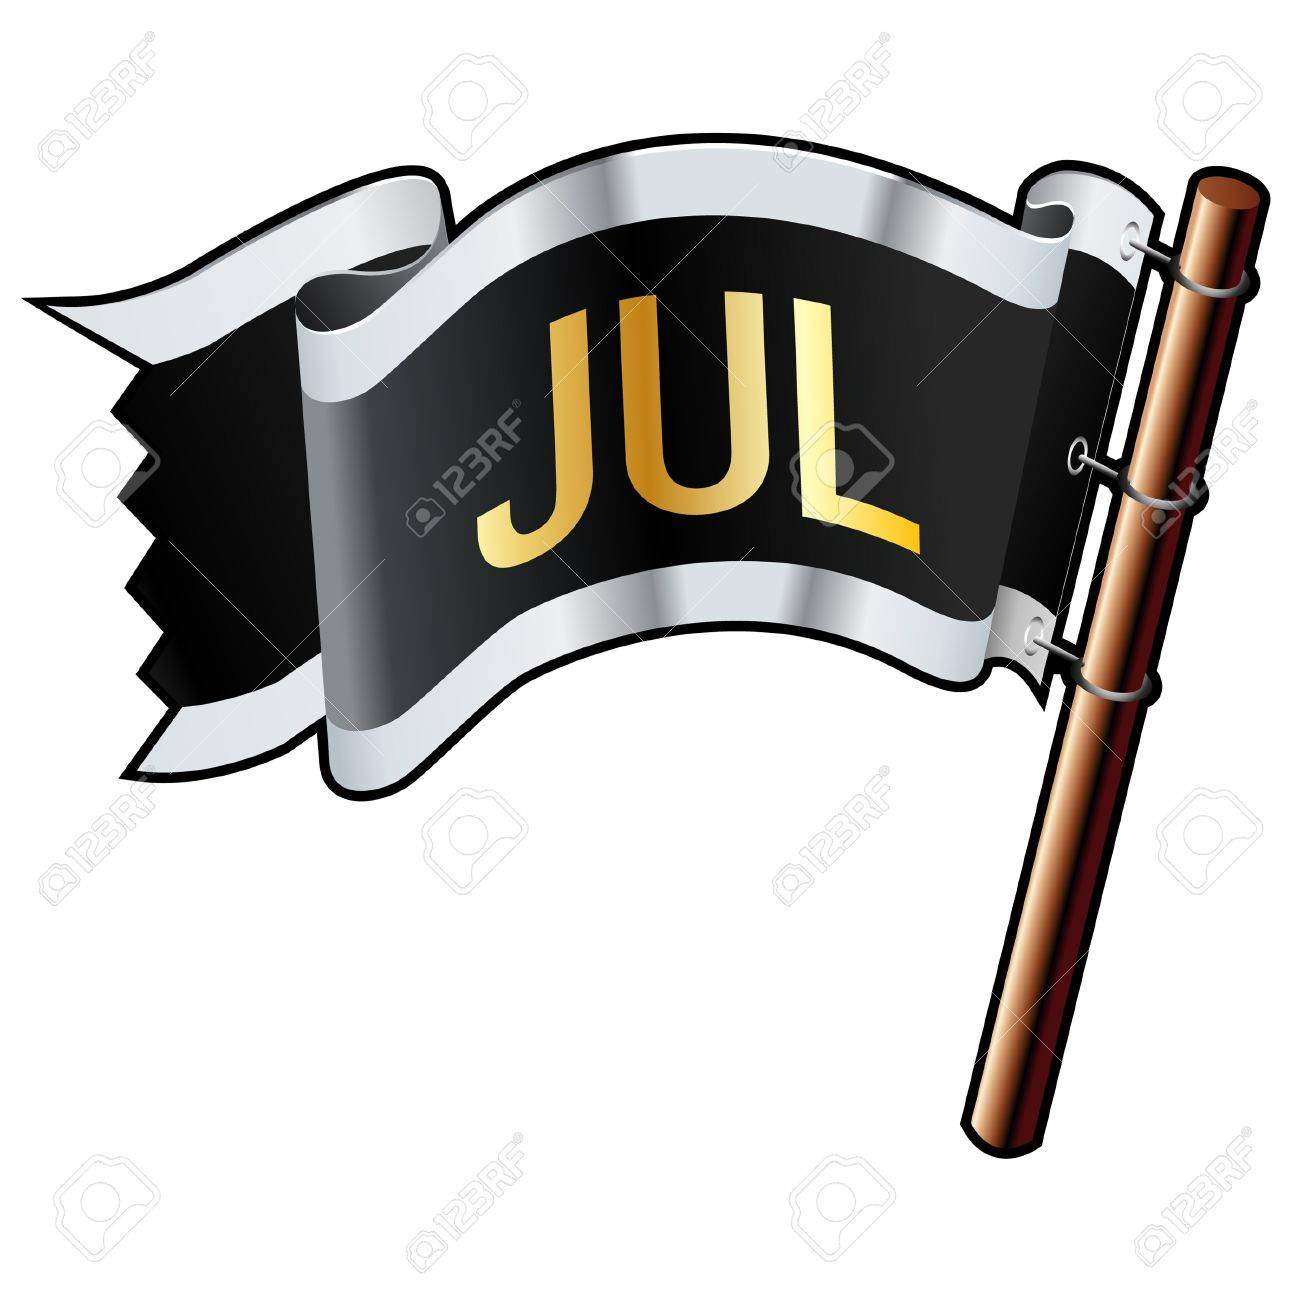 July calendar month icon on black, silver, and gold vector flag good for use on websites, in print, or on promotional materials Stock Vector - 14665745